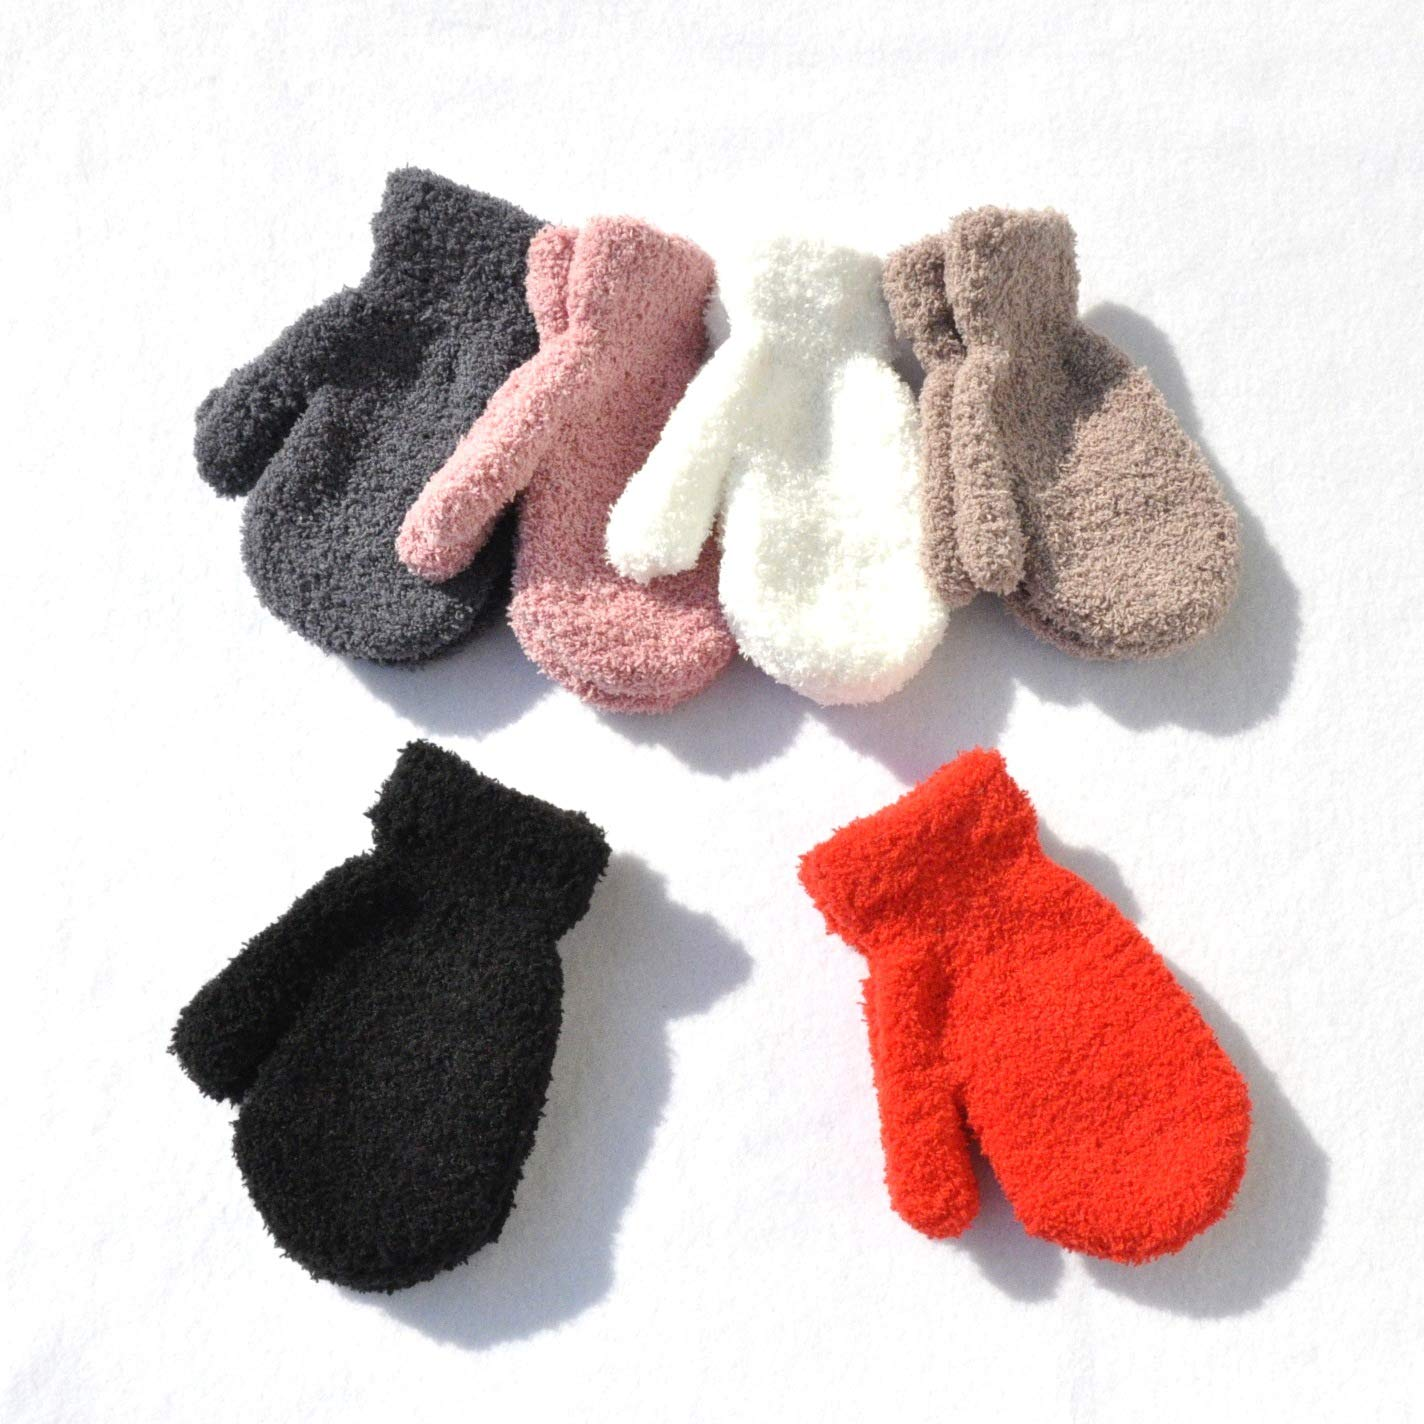 Unisex Baby Toddlers and Kids Gloves Winter Thick Warm Mittens for Infant Child (6 Pairs, 1-3 Years old)